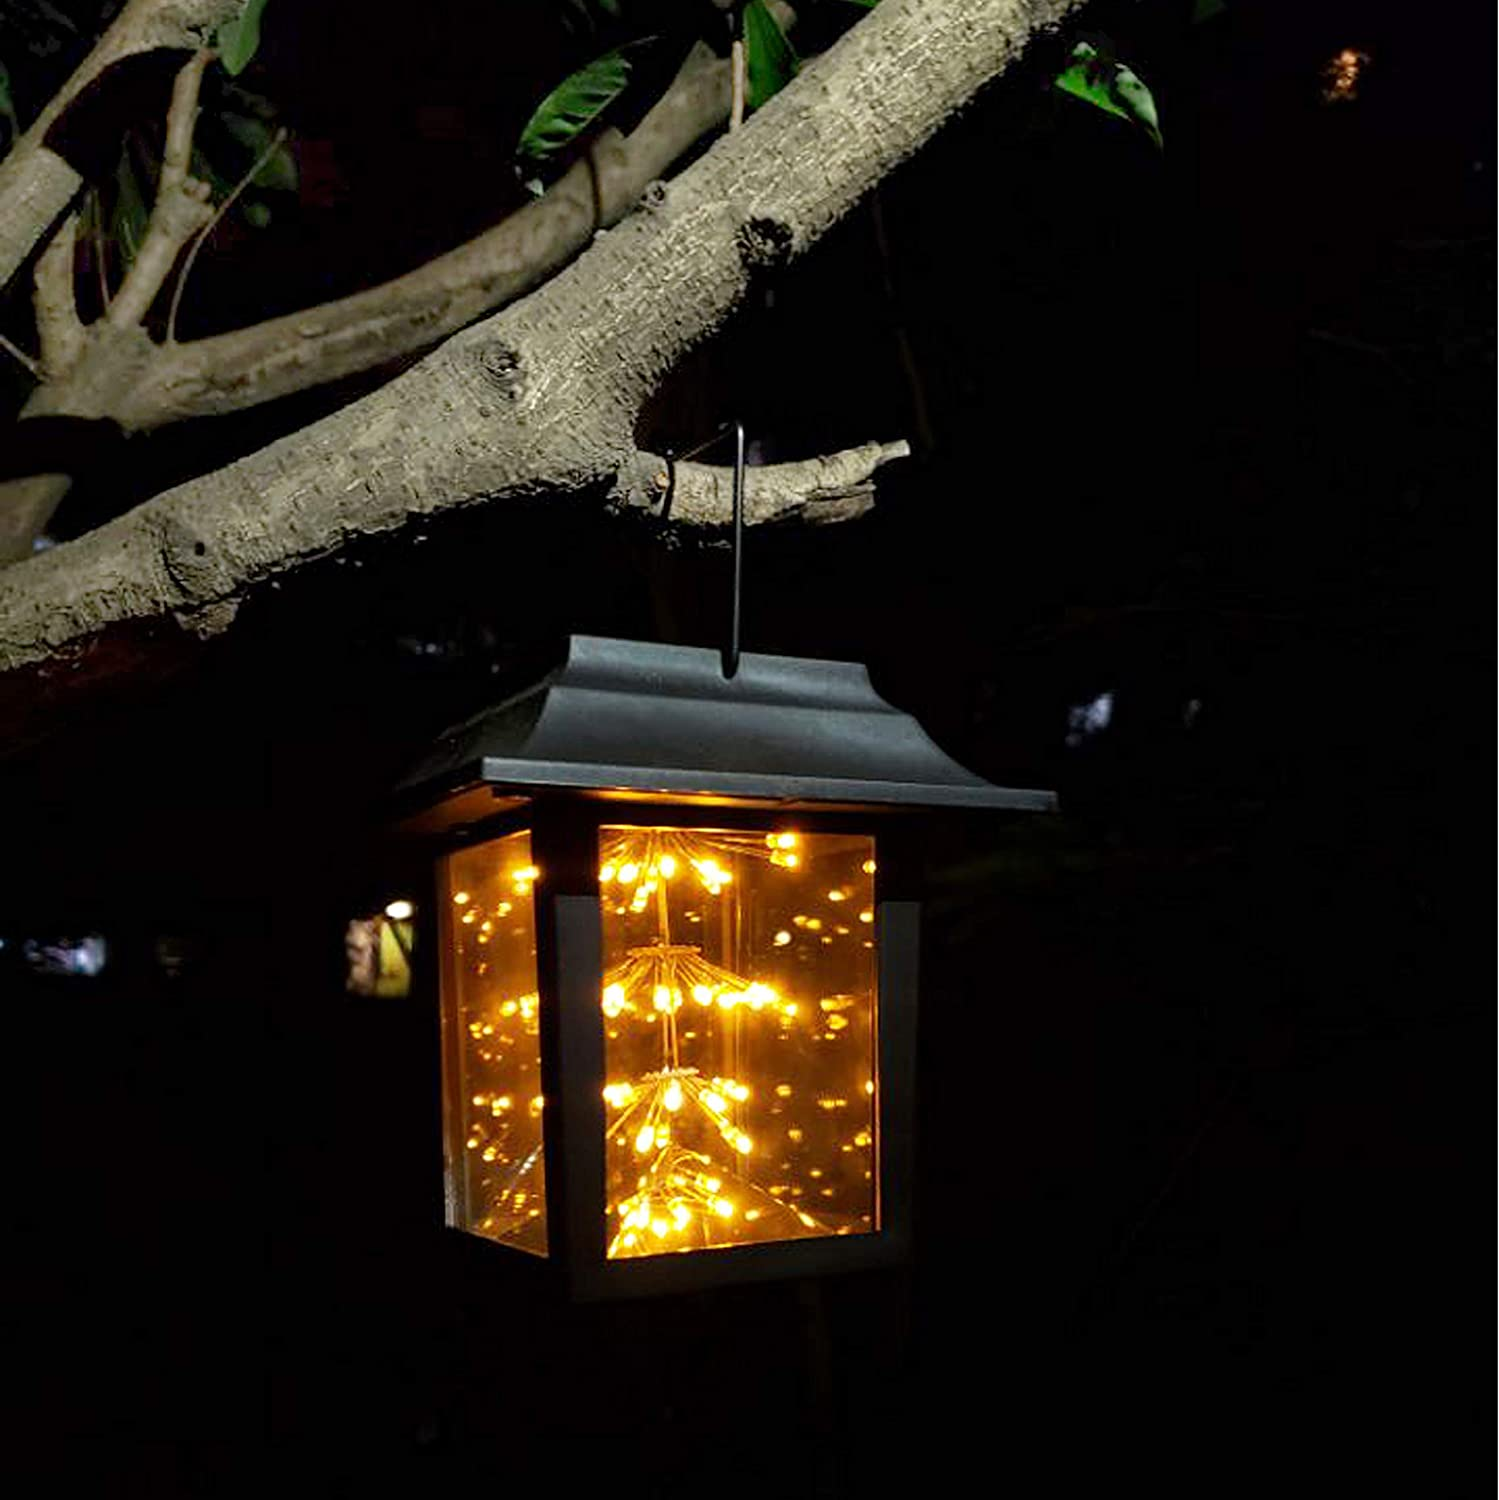 Solar Outdoor Lantern, Waterproof Hanging Solar Lantern with Fairy Copper String Lights for Patio, Garden, Lawn, Pathway (Yellow)